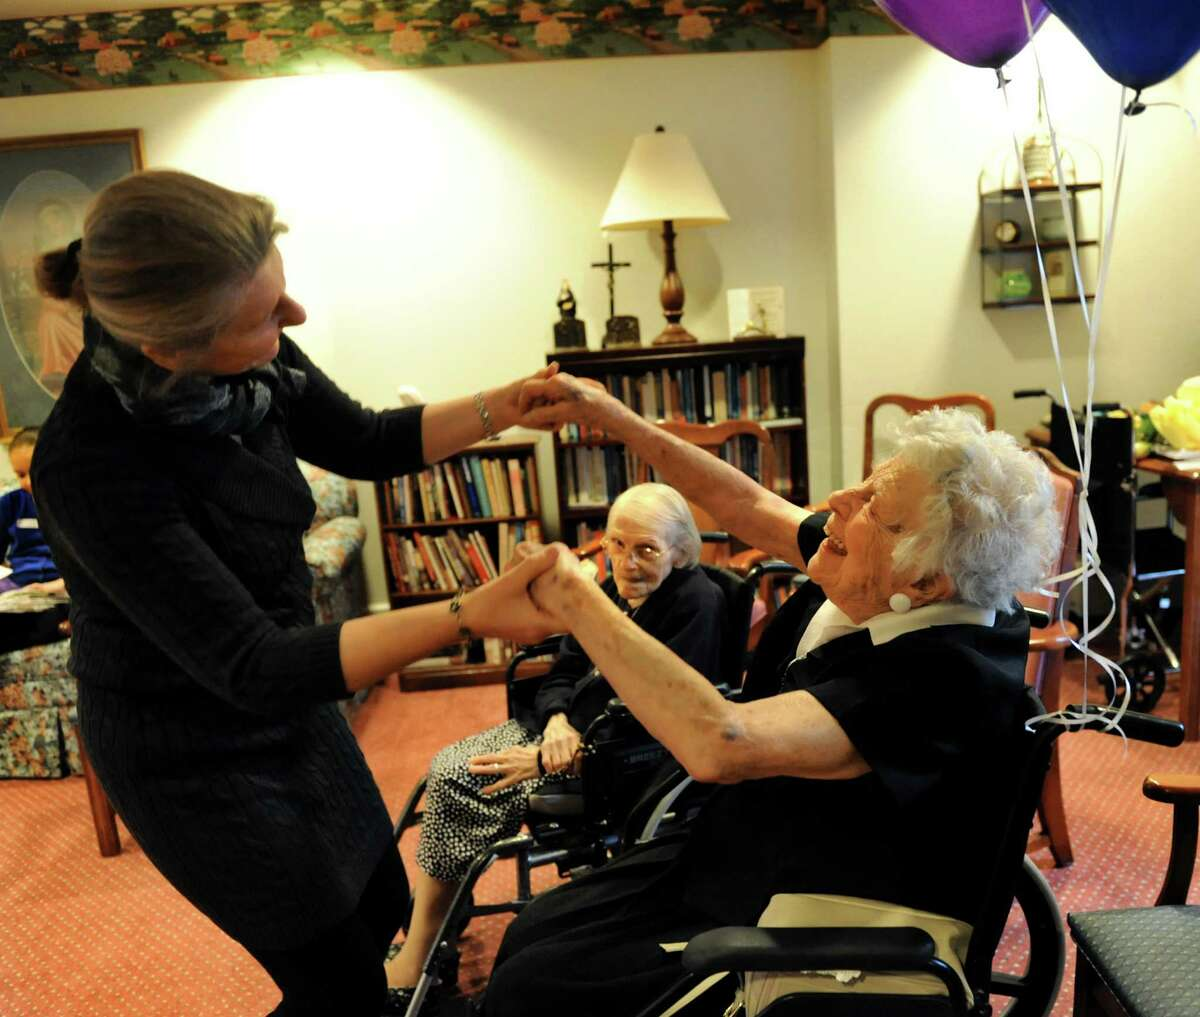 Yoga instructor Mira Lechowicz, left, dances with resident Kay Schottenham on her 103rd birthday before class starts on Wednesday, Nov. 27, 2013, at the Teresian House in Albany, N.Y. (Cindy Schultz / Times Union)